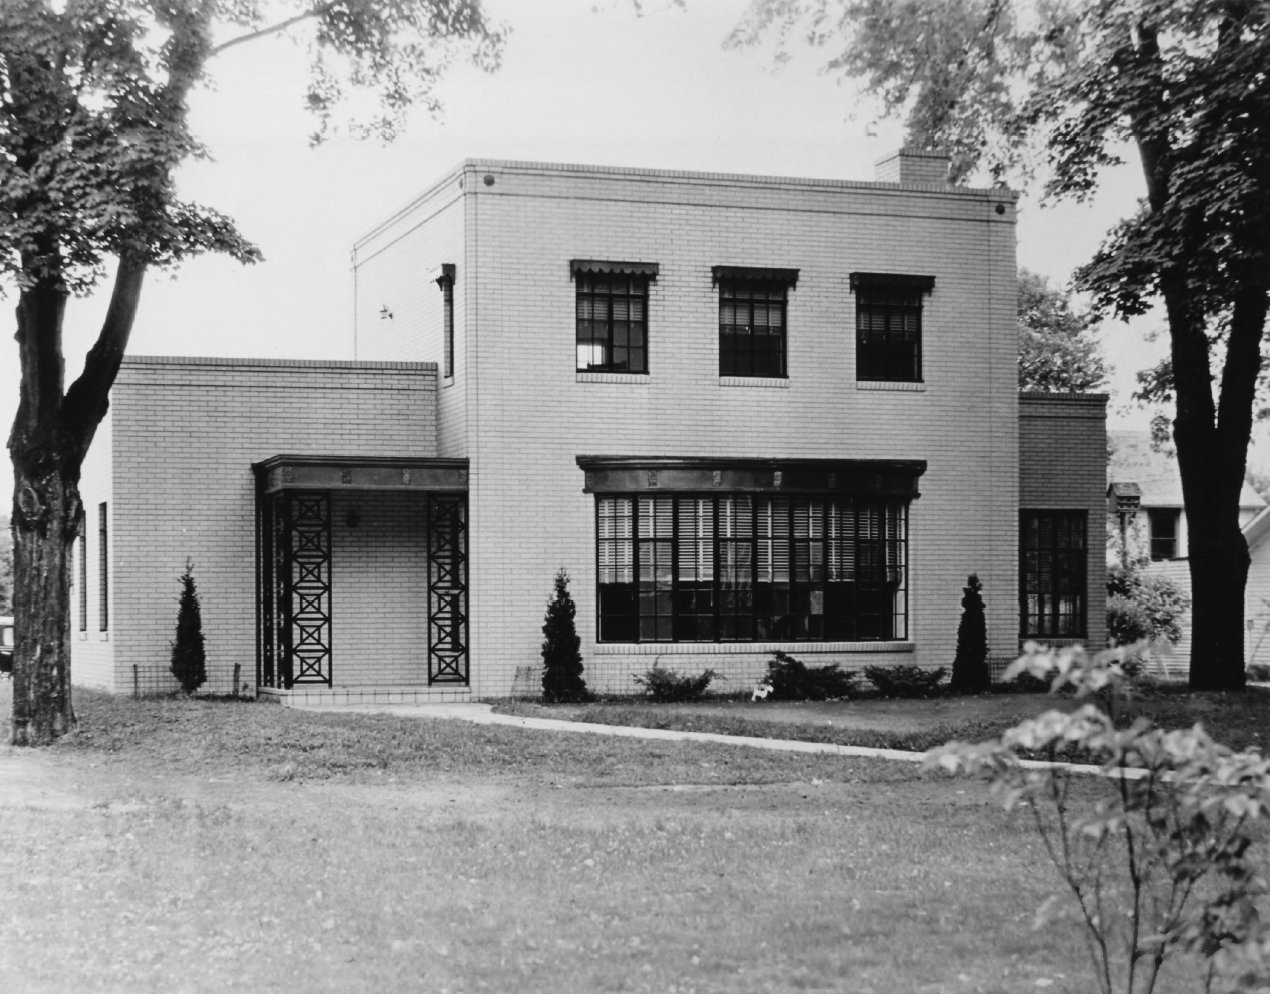 The Ensign-Seelinger House in Huntington, WV soon after it was constructed circa 1933-35